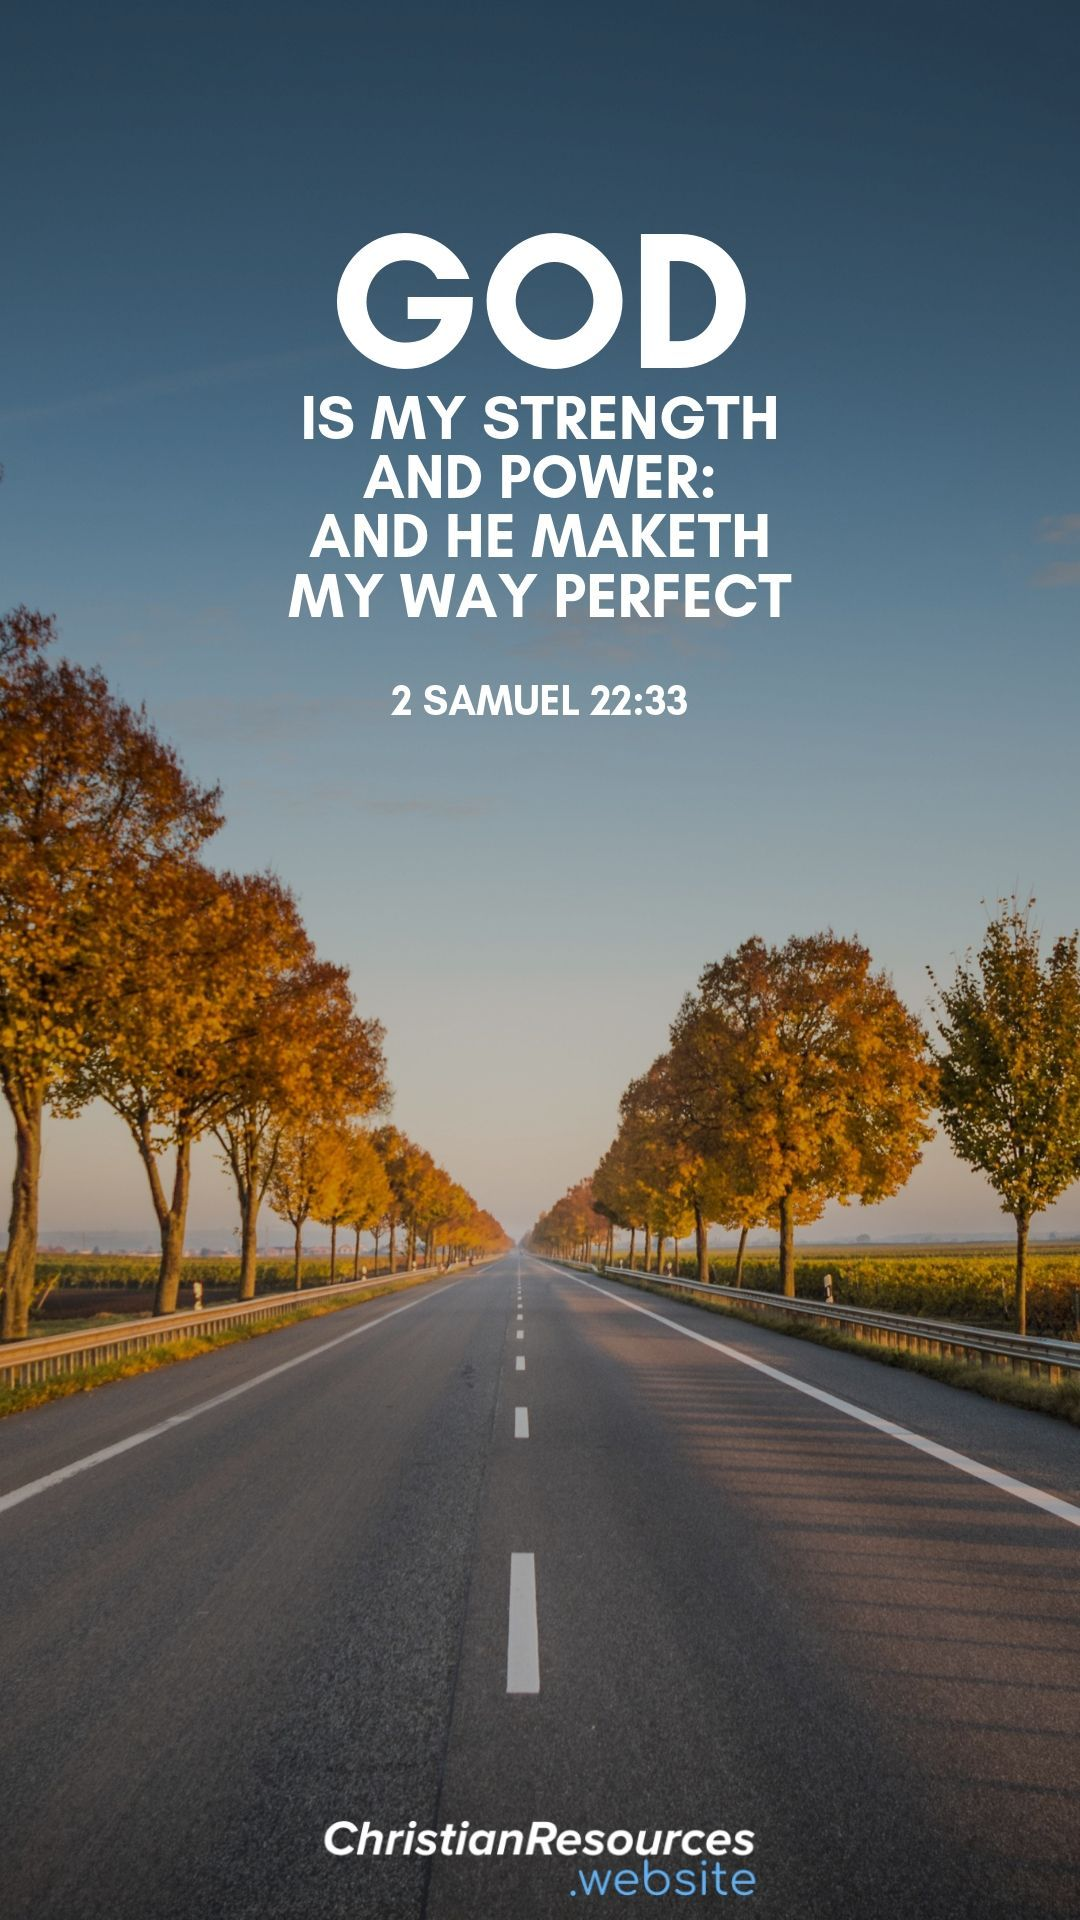 God is my strength and power: and he maketh my way perfect (2 Samuel 22:33). #BibleVerses #BibleQuotes #ScriptureQuotes #GodQuotes #BibleQuotesInspirational #ChristianResources #Bible #Quotes #Strength